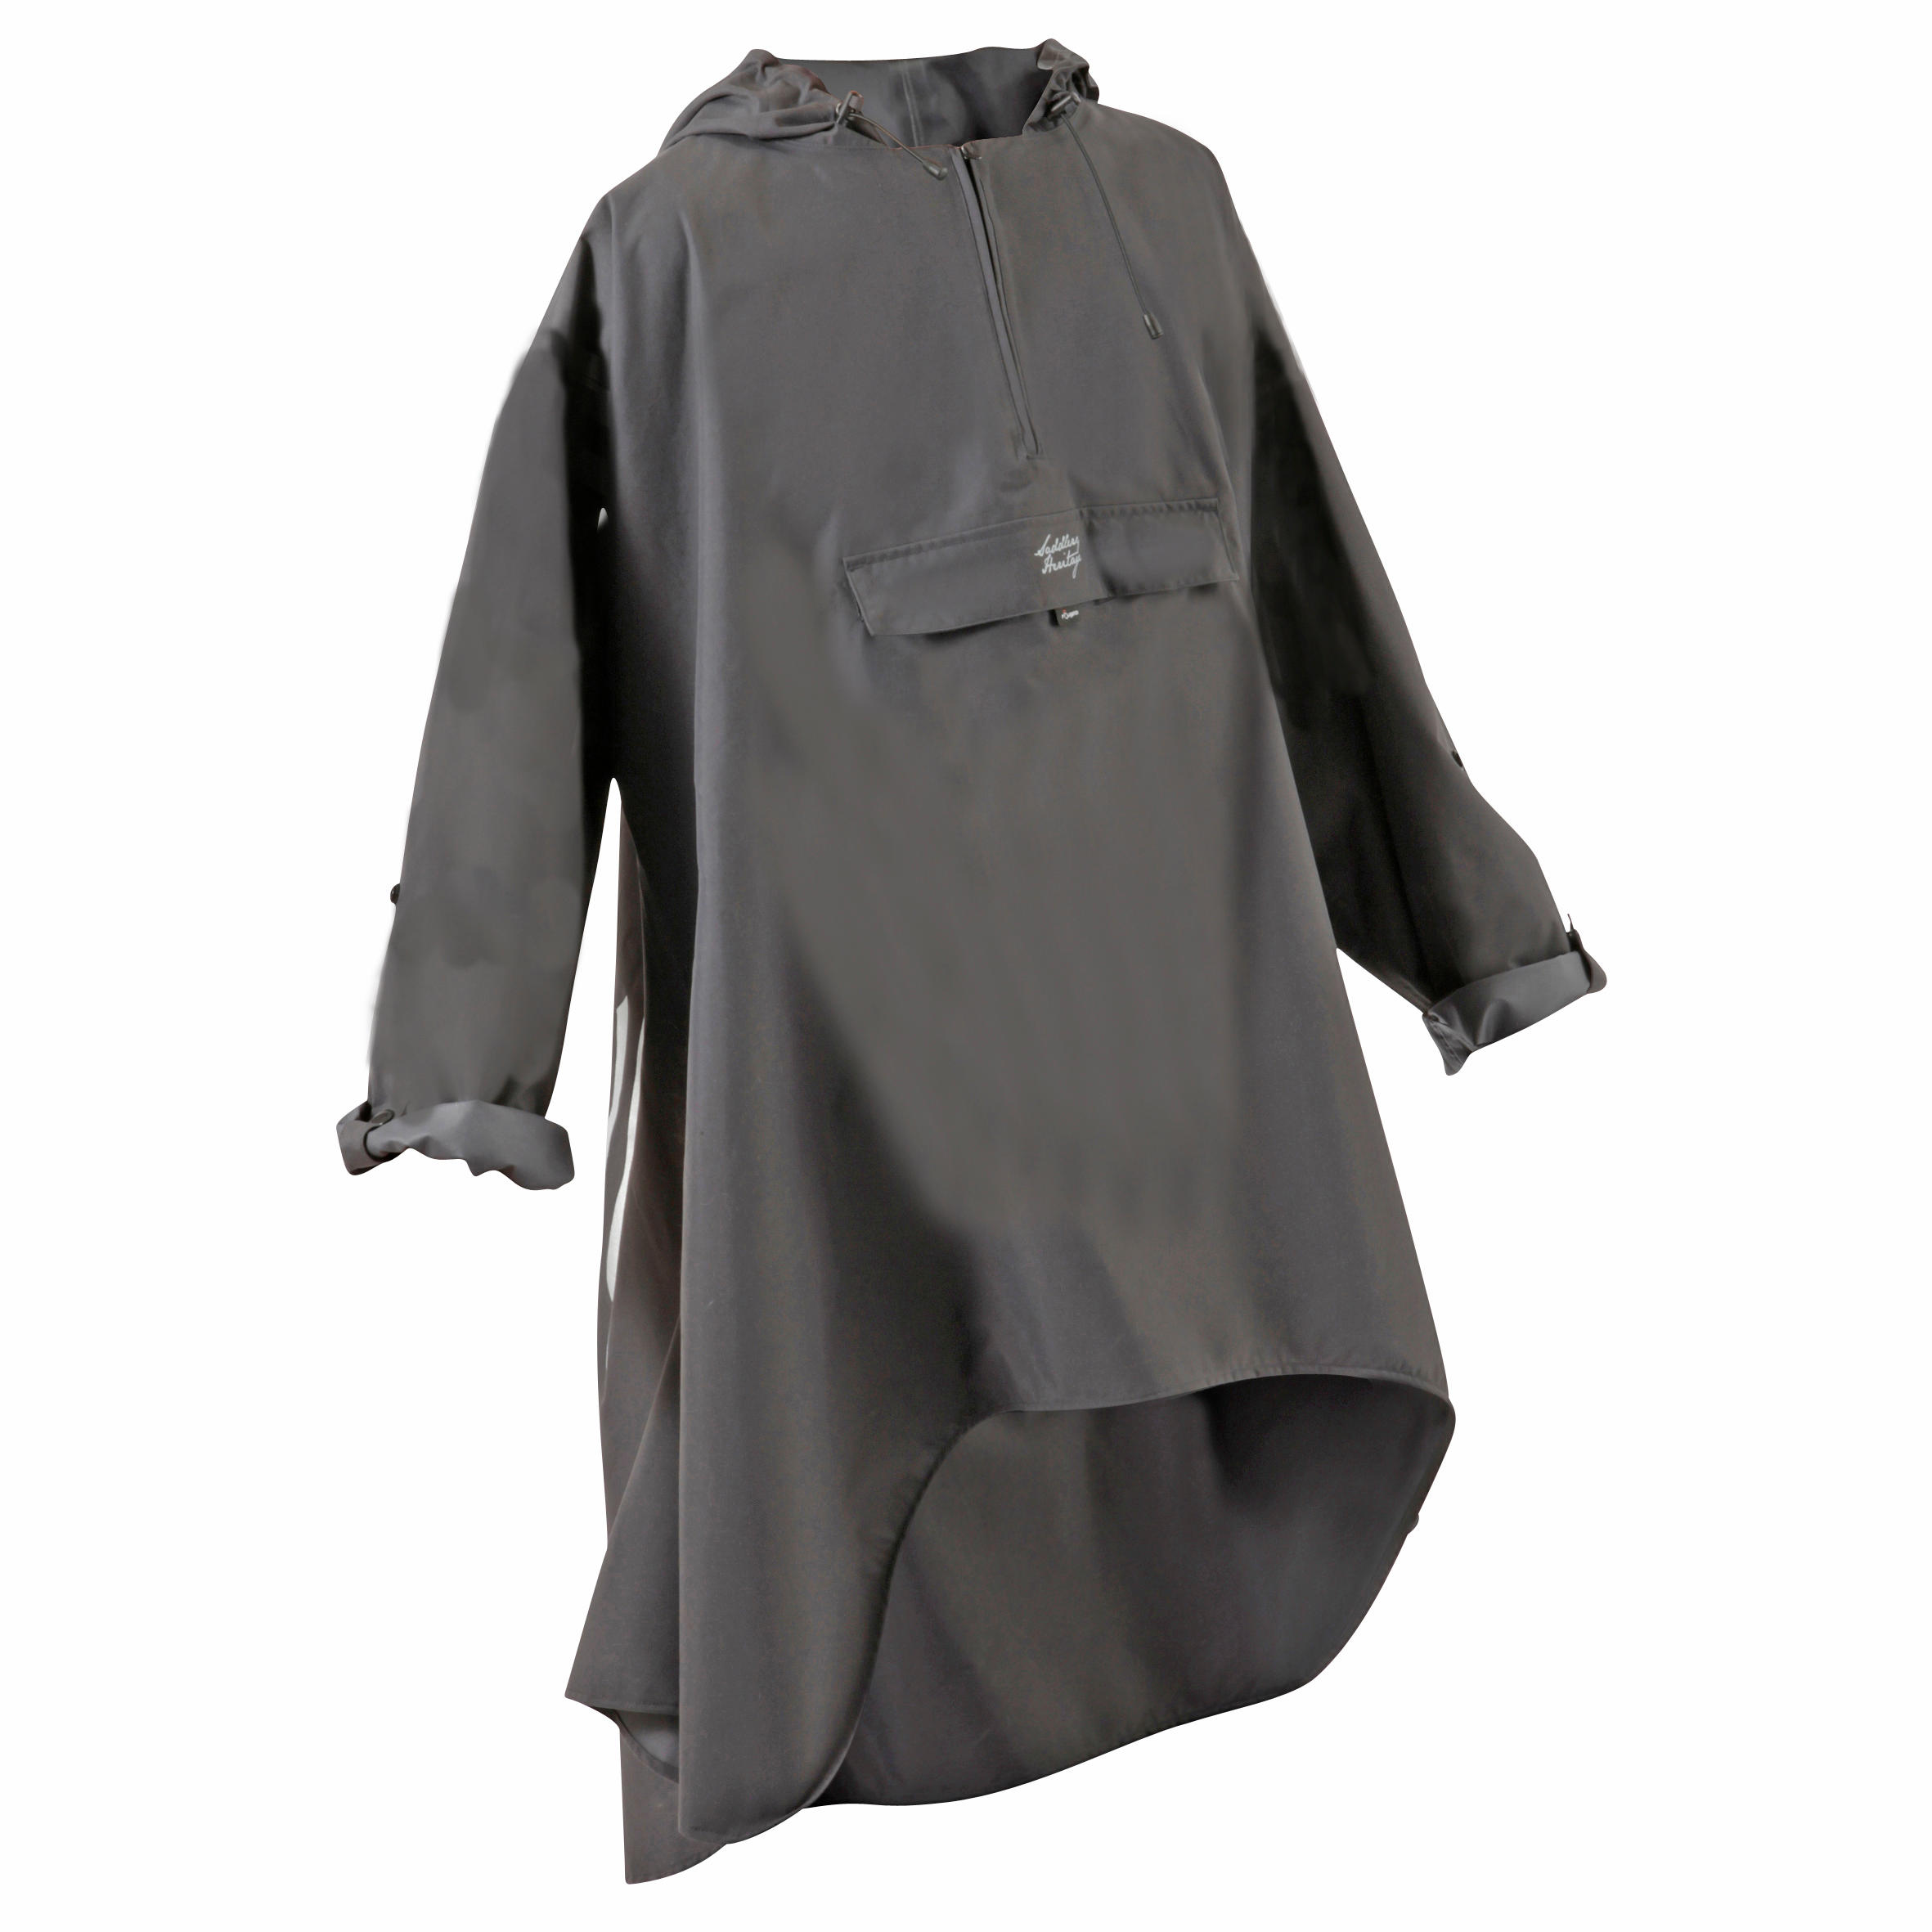 Poncho Sentier Gri imagine produs